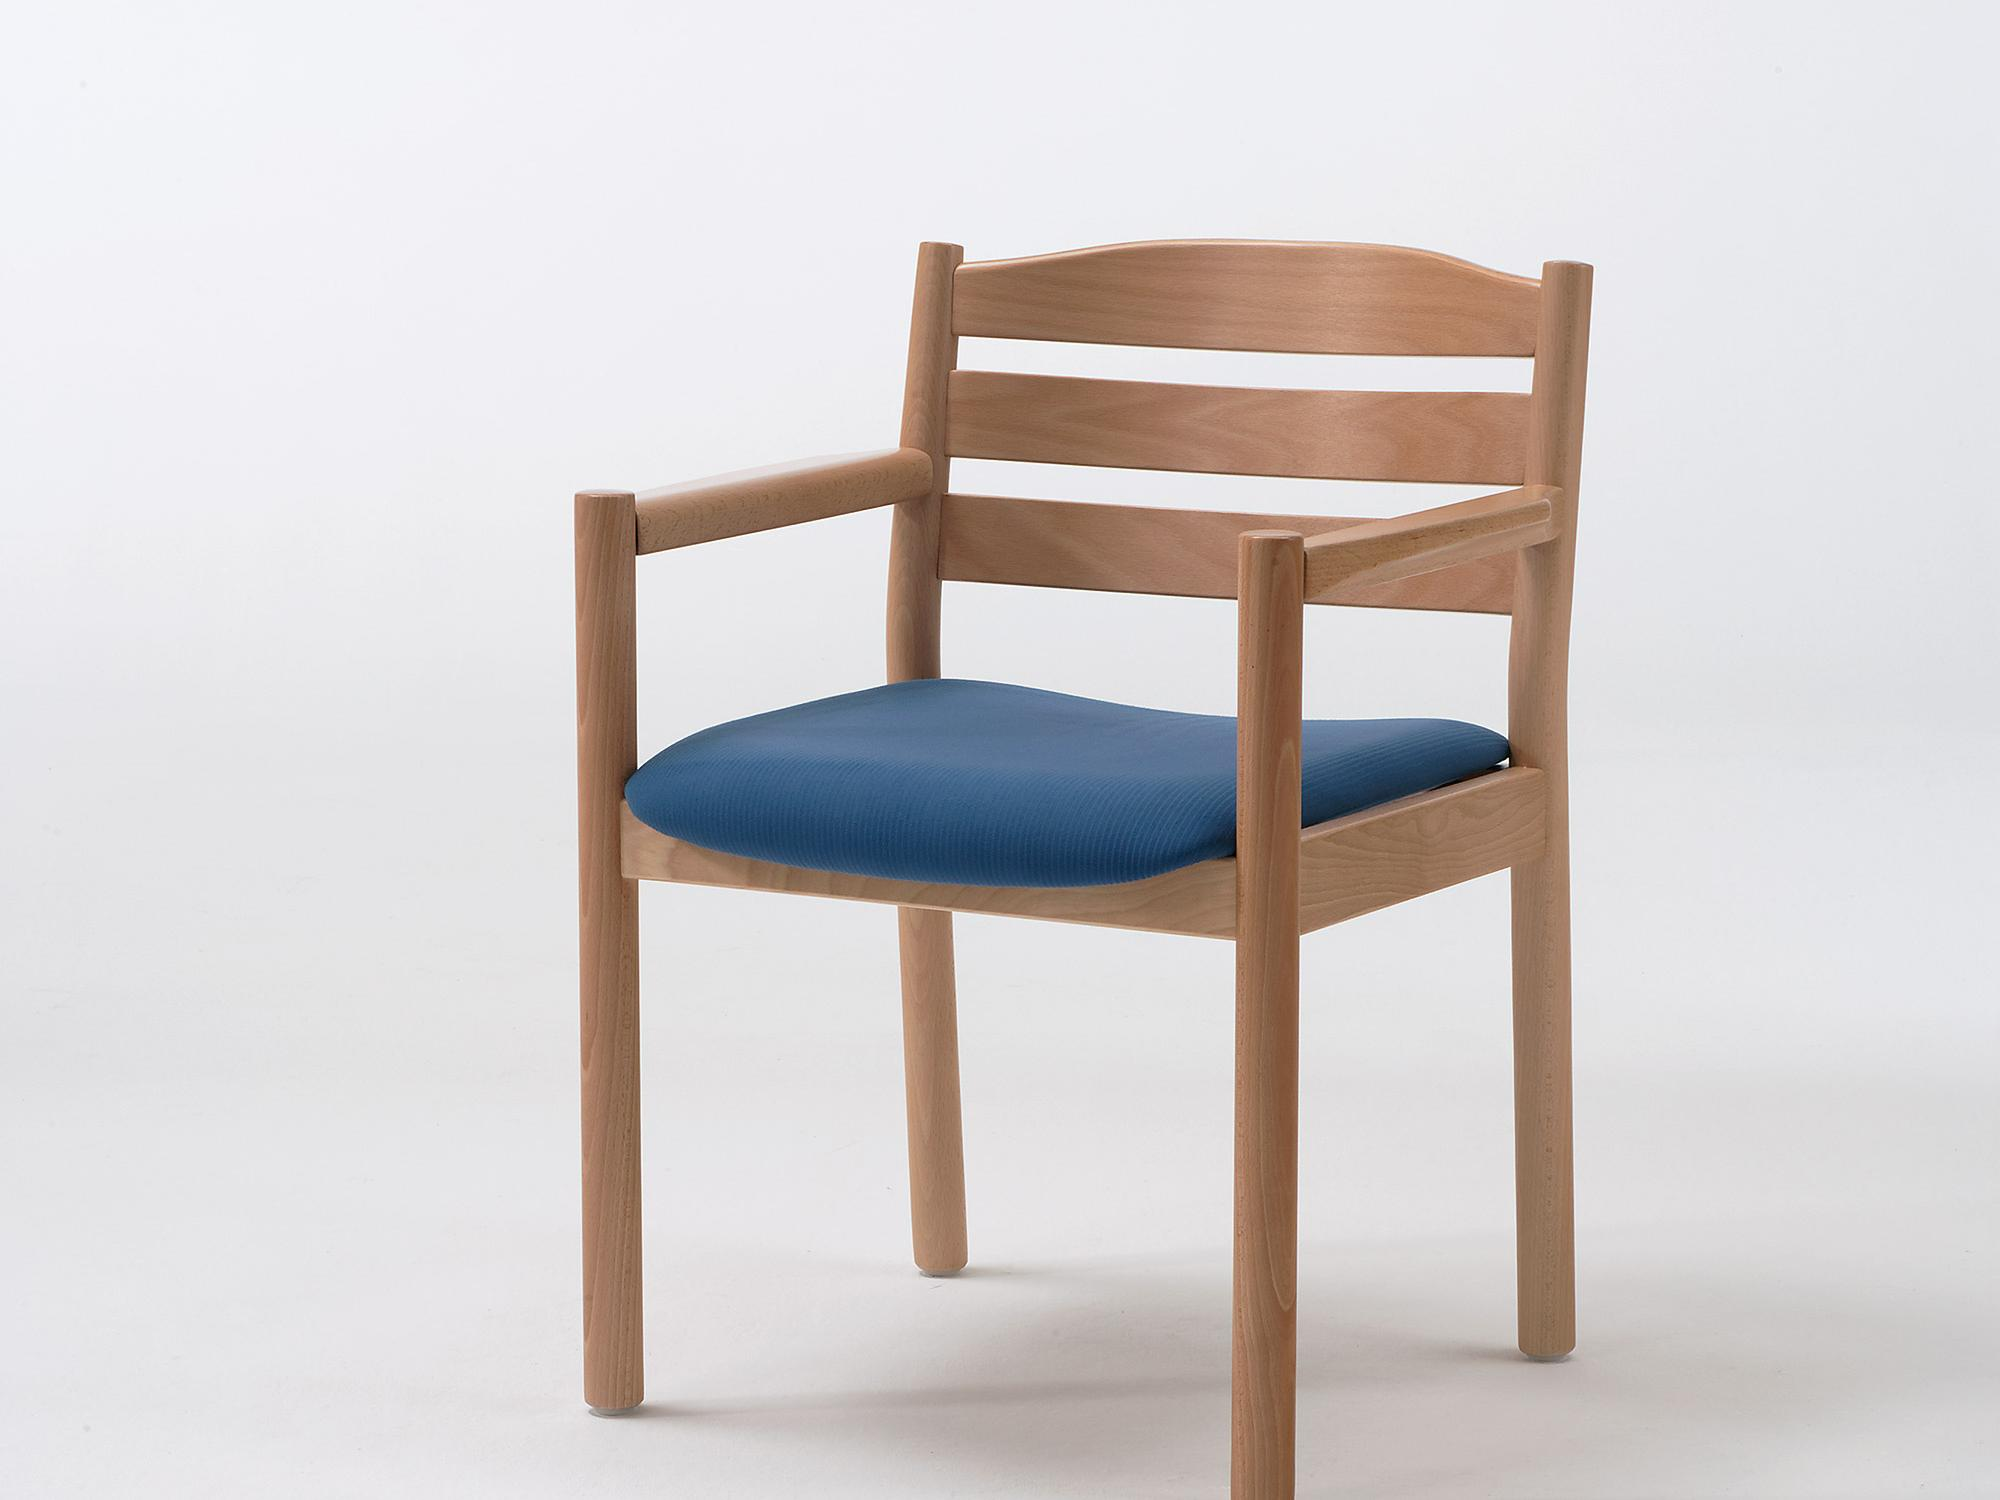 The Primo as an armchair with non-upholstered back